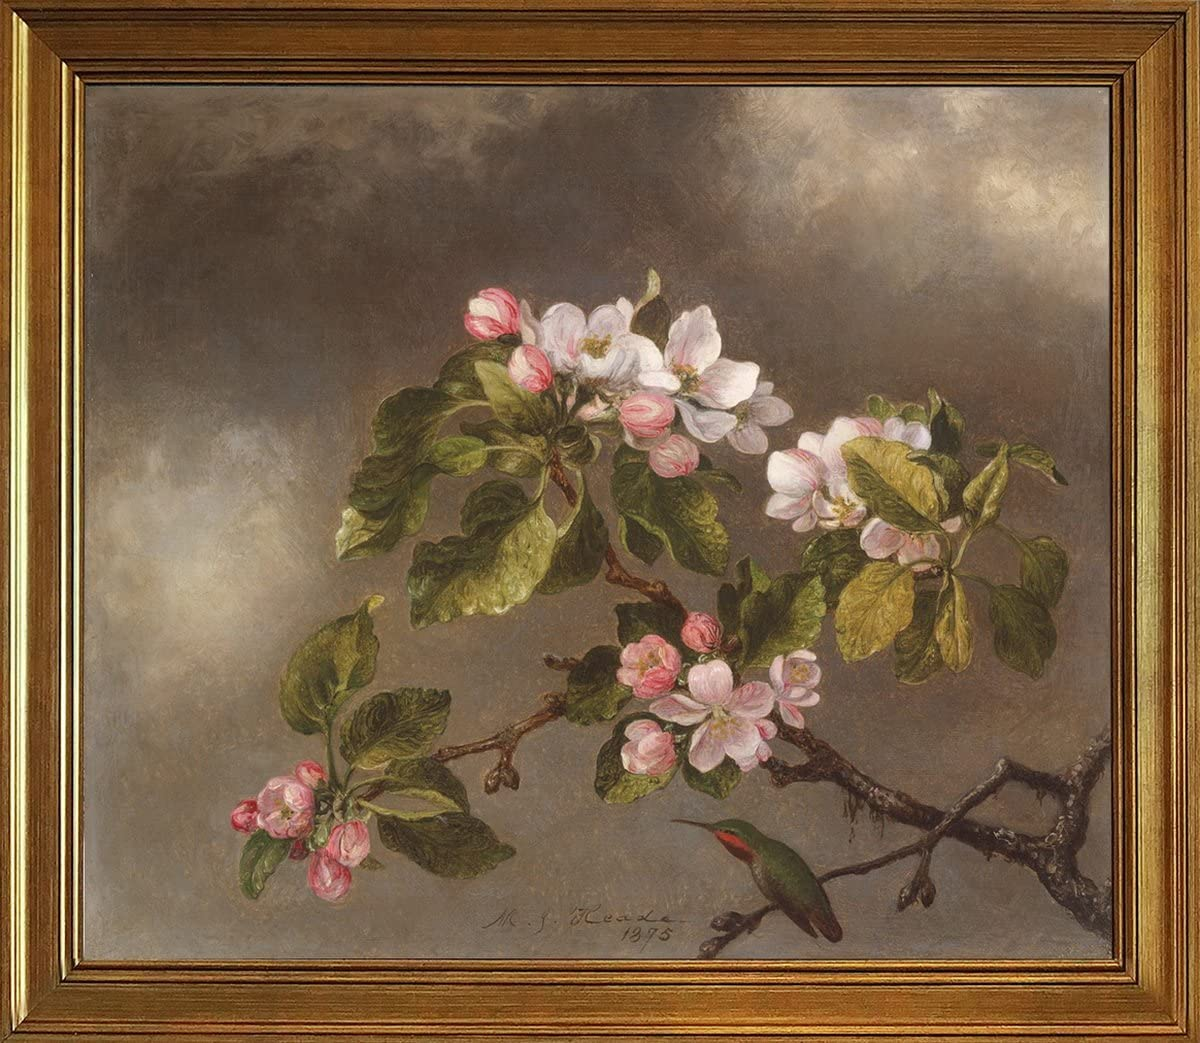 Berkin Arts Classic Framed Martin Johnson Heade Giclee Canvas Print Paintings Poster Reproduction(Hummingbird and Apple Blossoms)